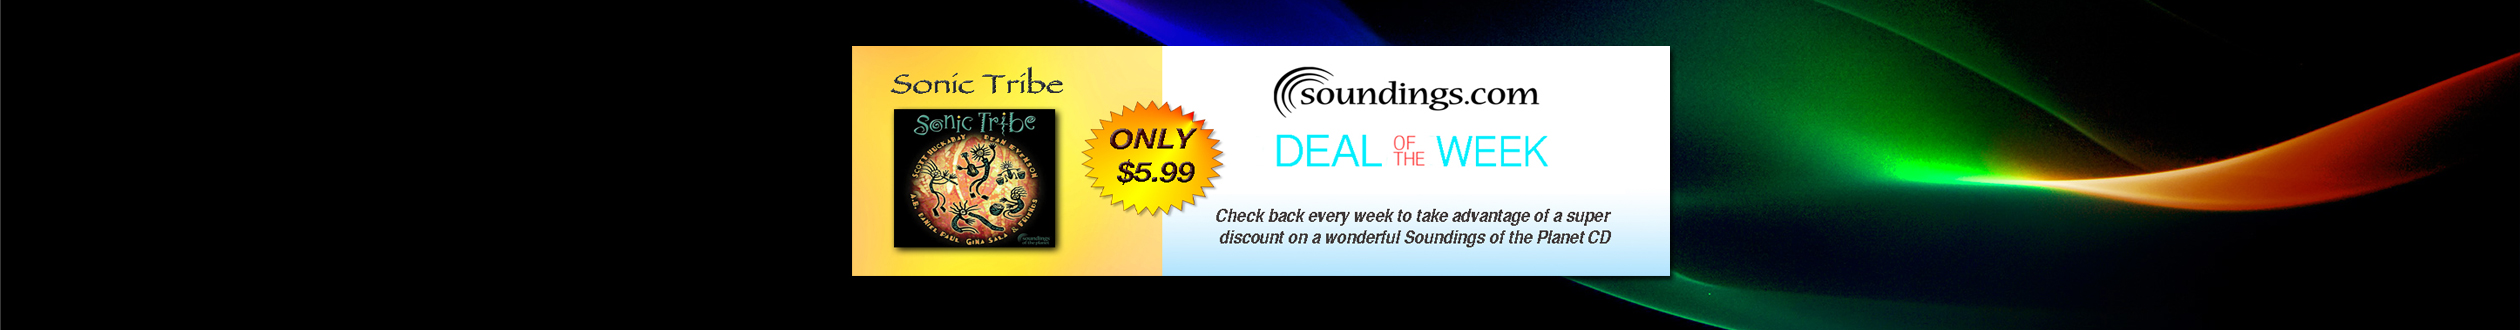 Deal-of-the-Week-Sonic-Tribe-Slide4_edited-3